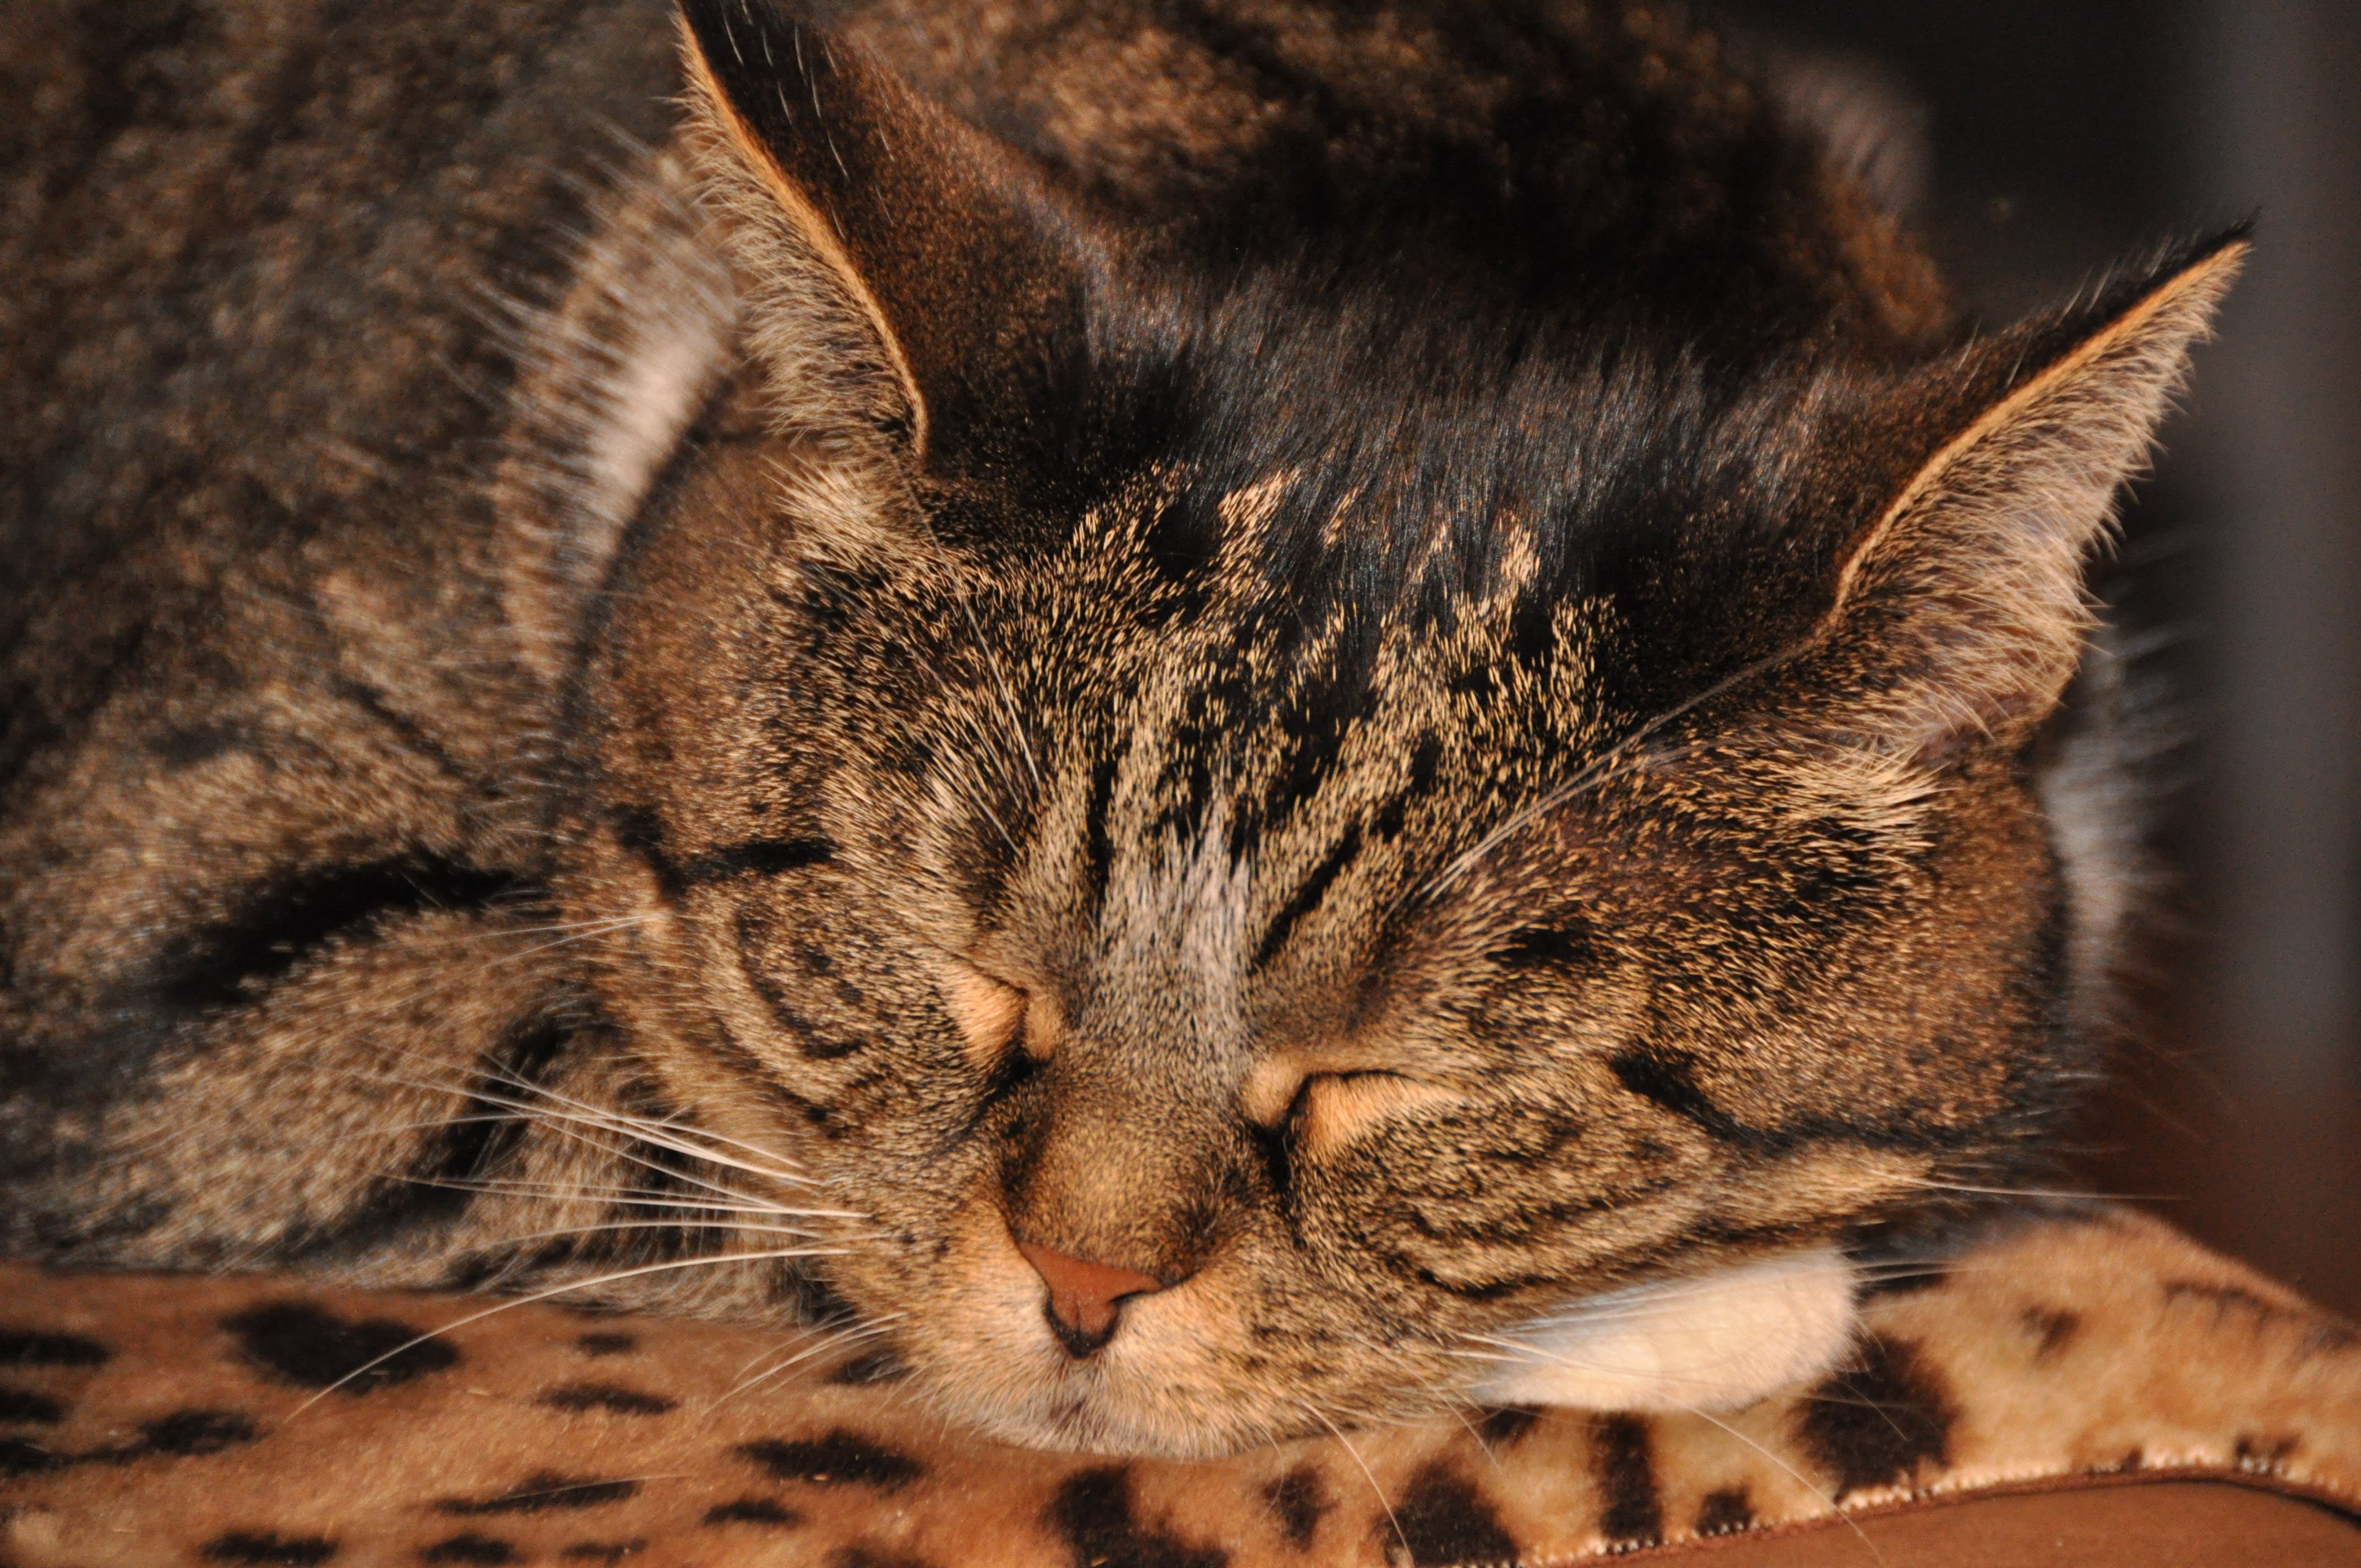 Tubby Cat Sleeping on Brown Surface